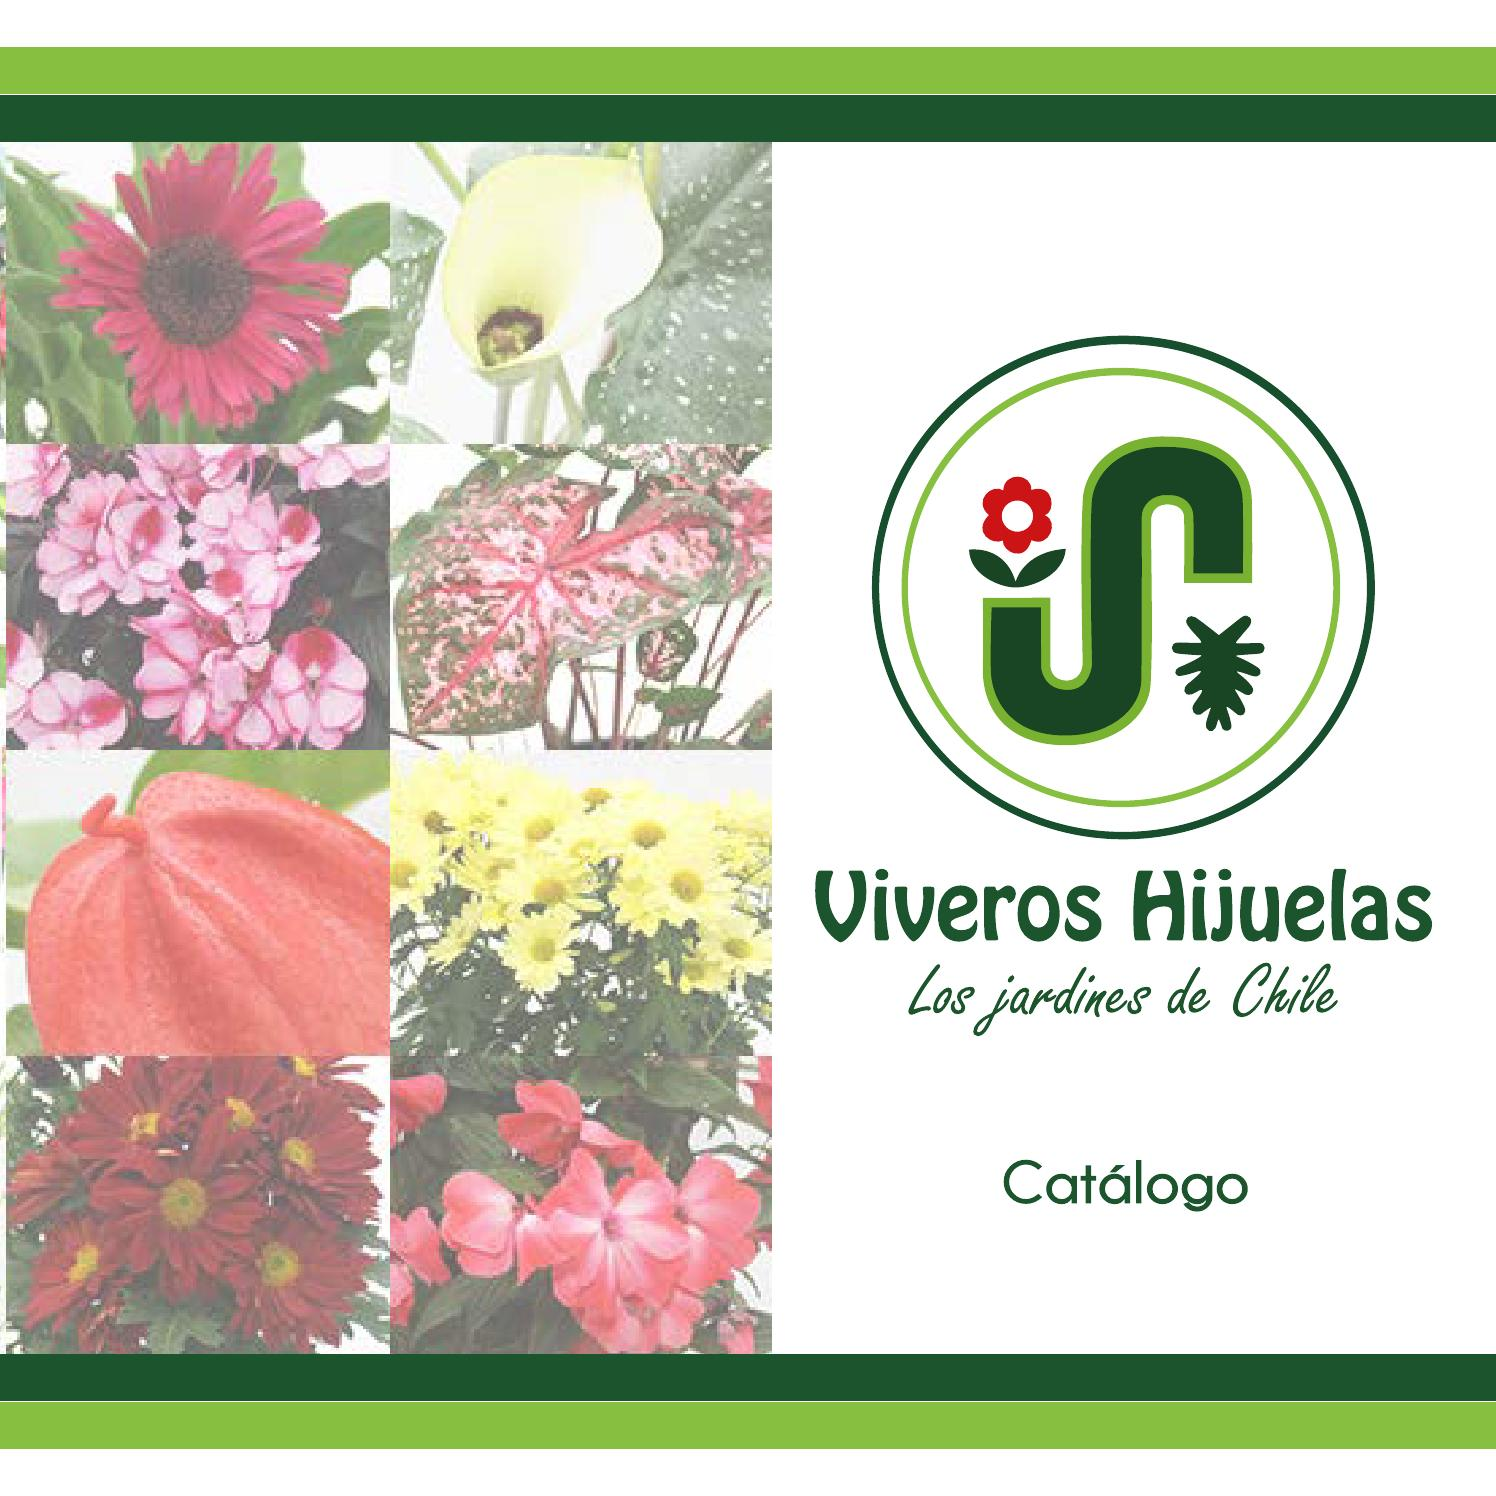 Cat logo general vivero hijuelas by mayela lopez issuu for Vivero hijuelas